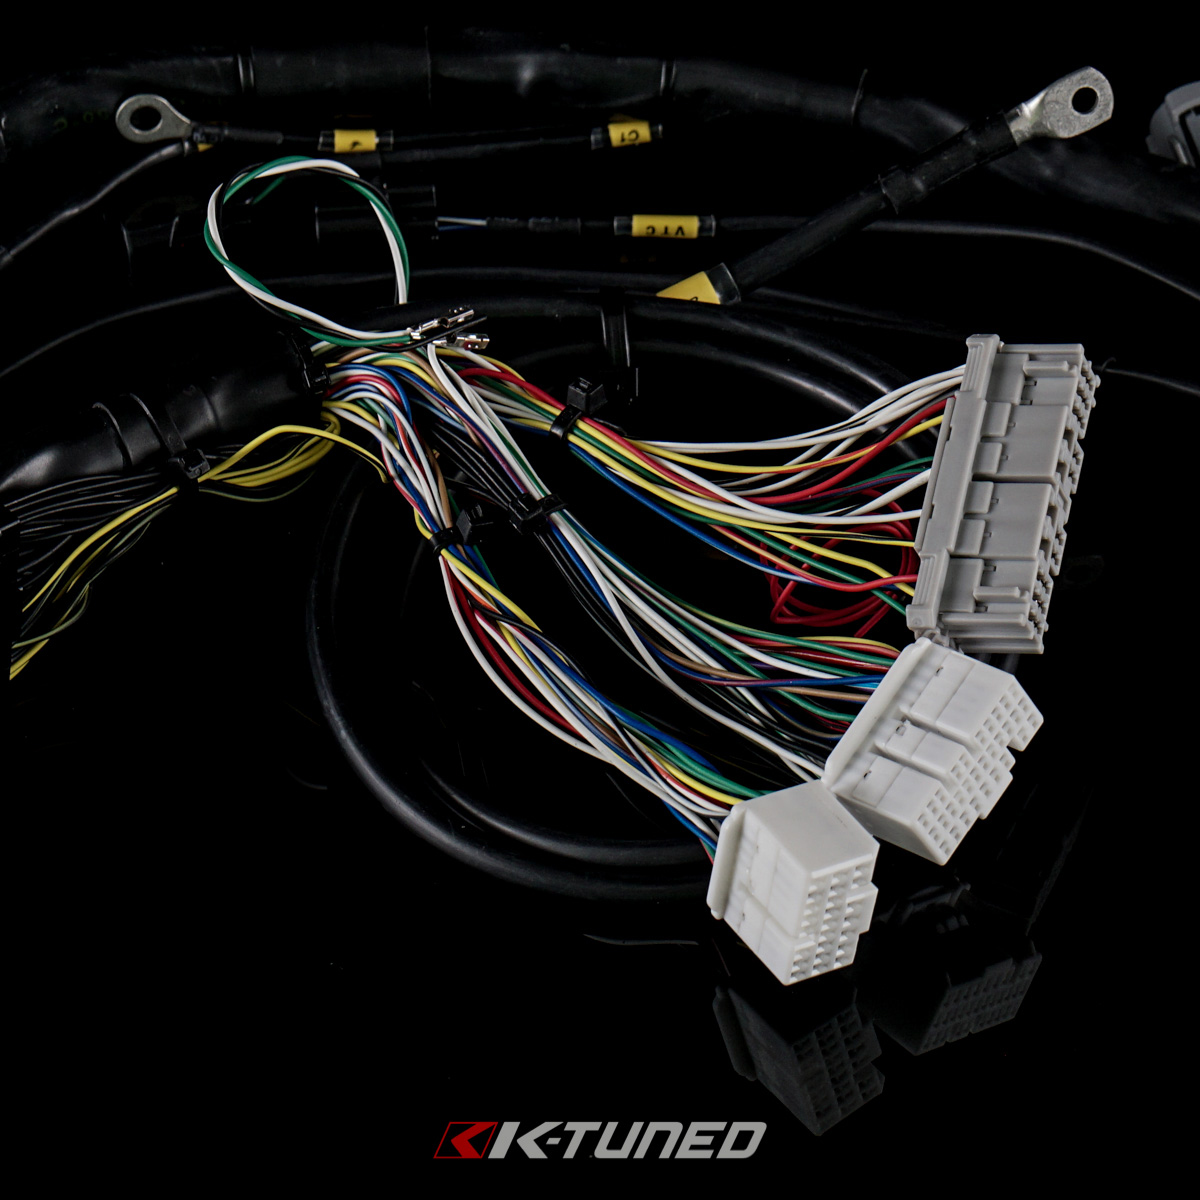 KTH 204 ENG_020 k series tucked engine harness rsx tucked wire harness at creativeand.co